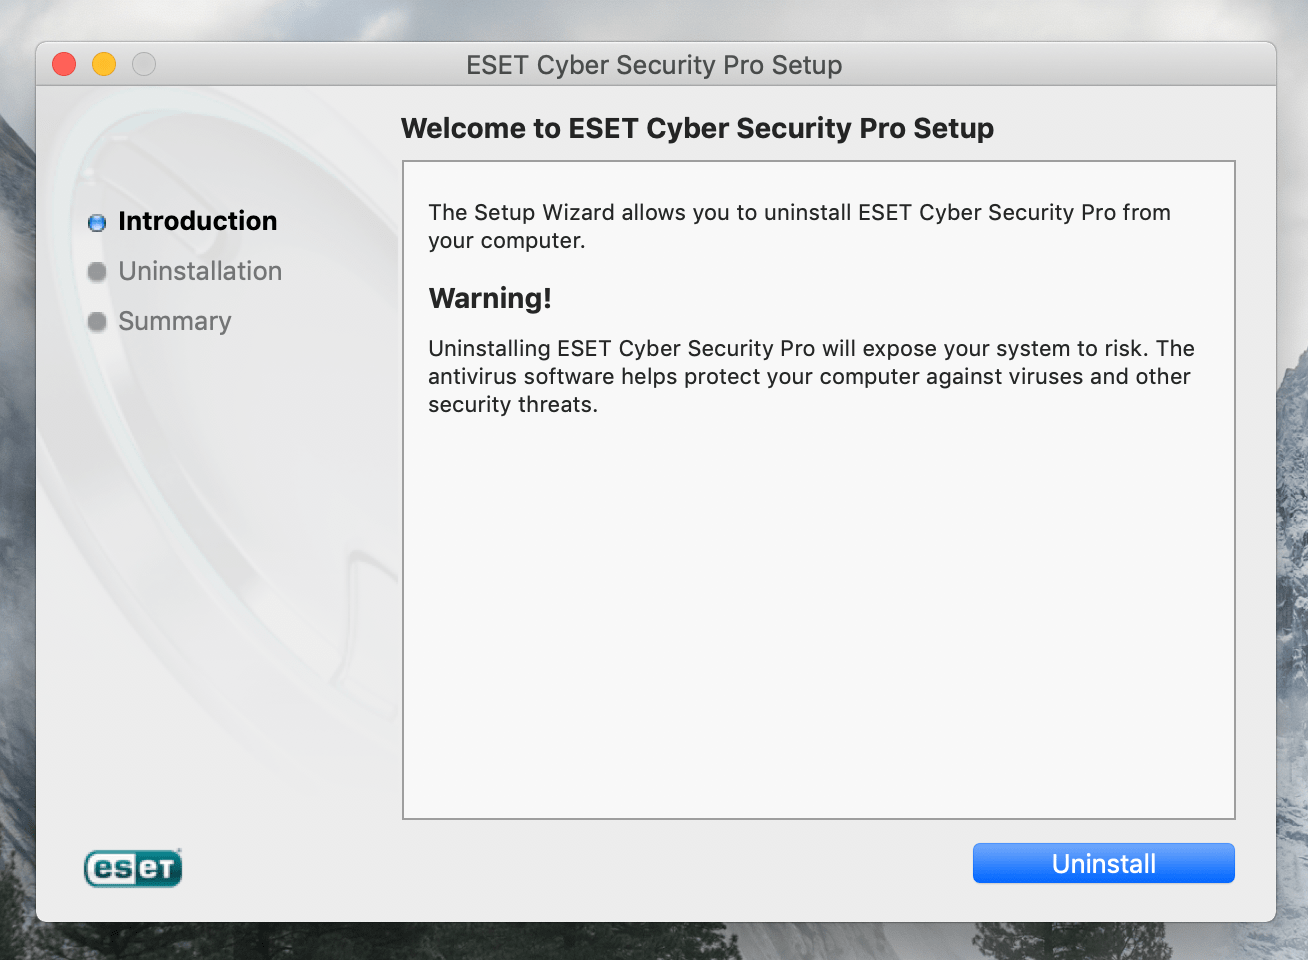 How to Uninstall Eset on a Mac - Full Removal Guide